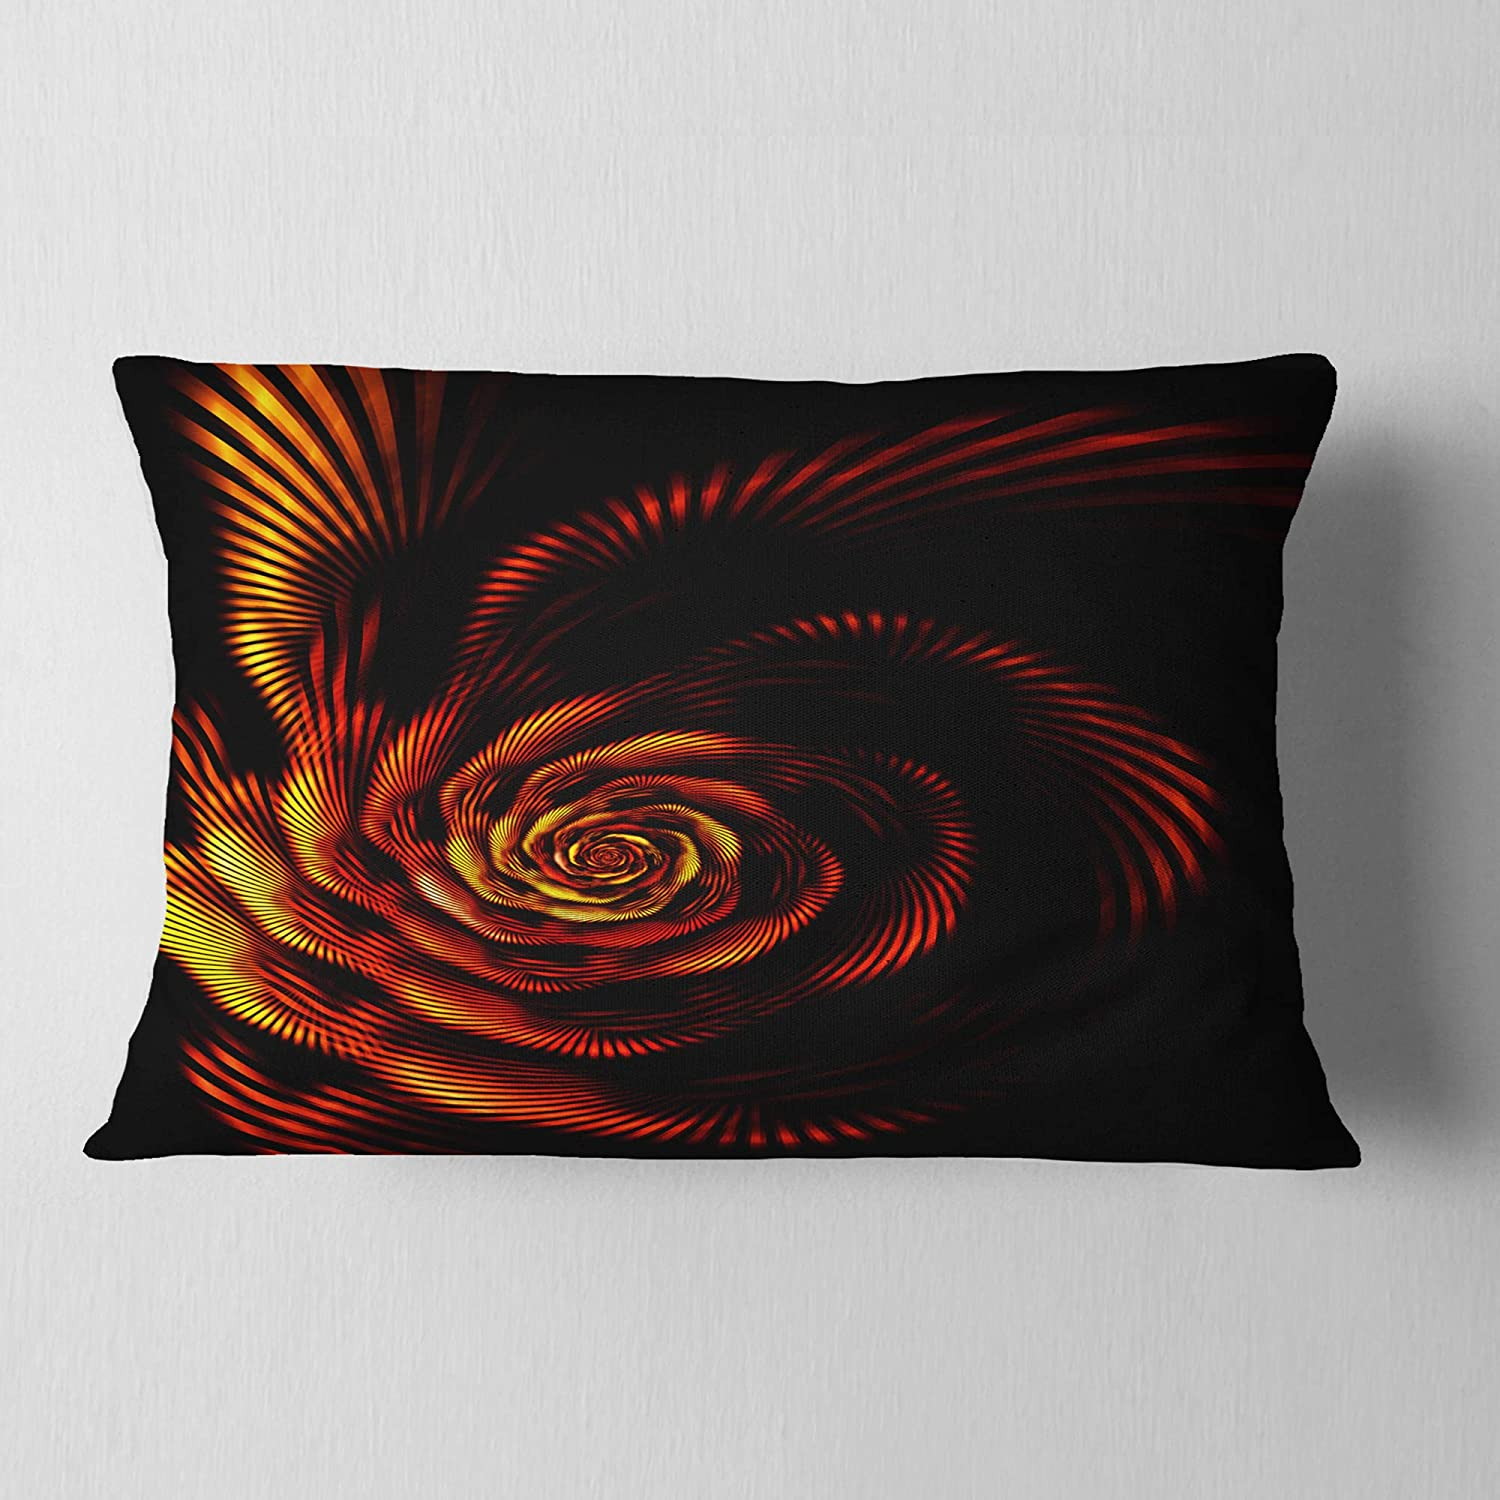 Designart CU13869-12-20 Fiery Rose Fractal Passion' Flower Lumbar Cushion Cover for Living Room, Sofa Throw Pillow 12' x 20'